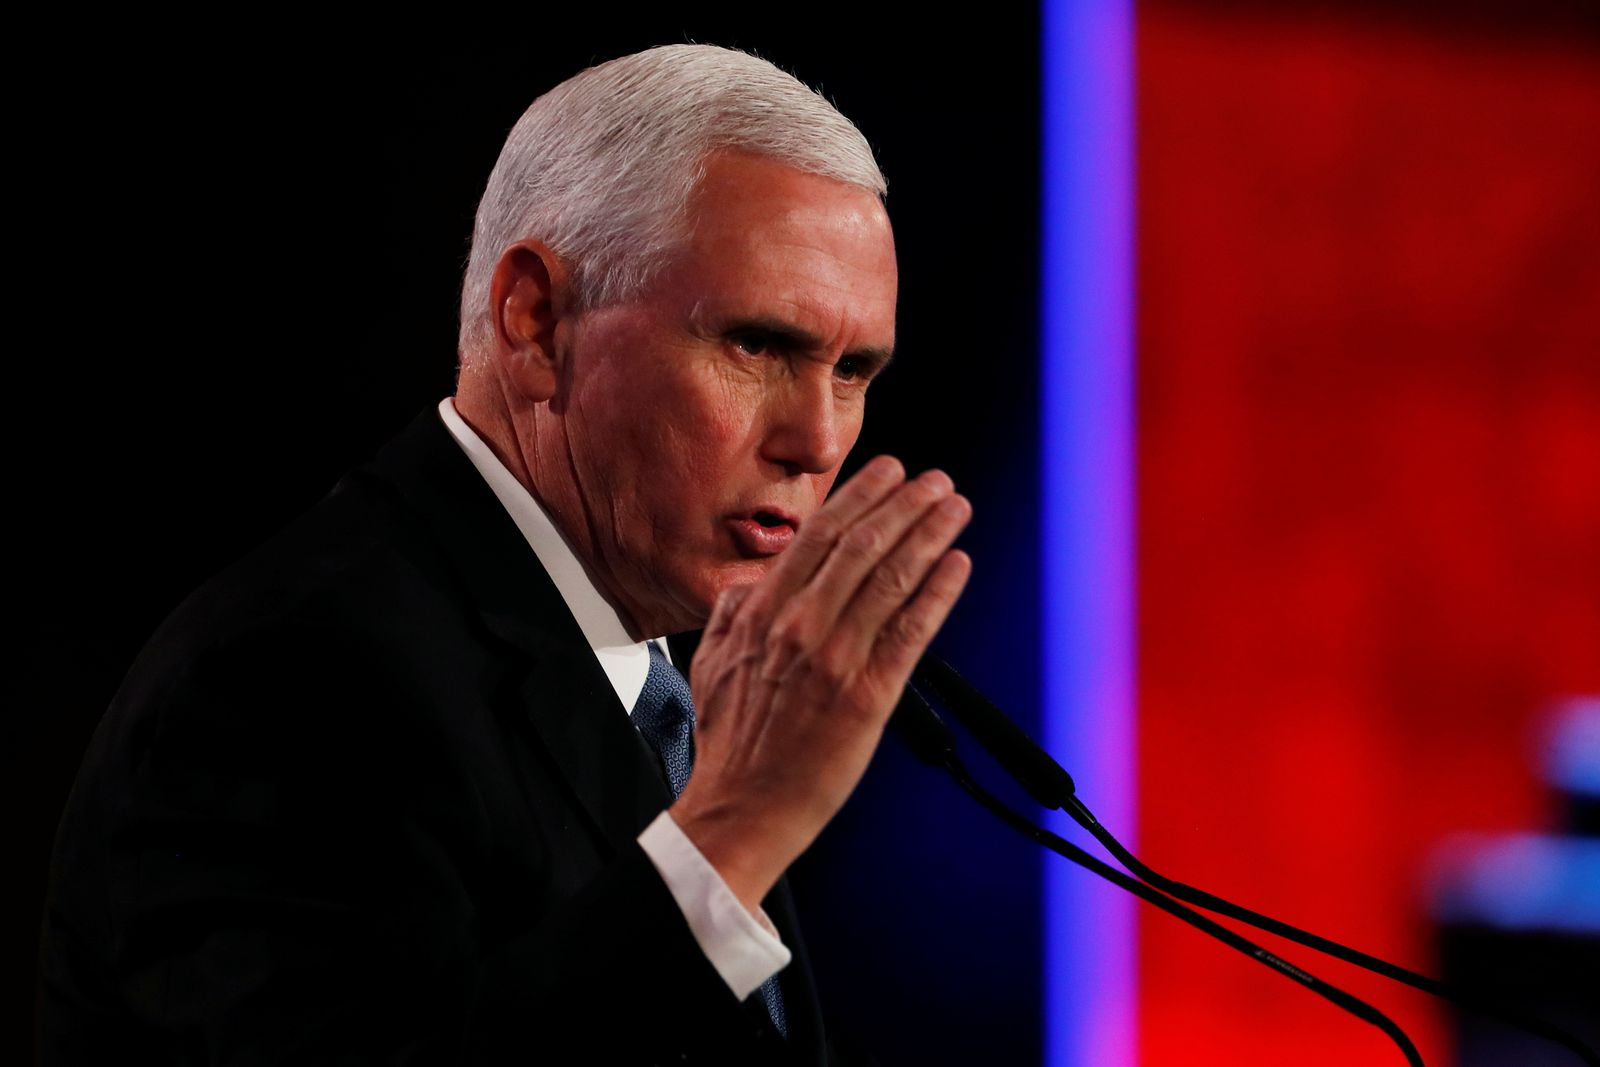 U.S. Vice President Mike Pence speaks at the World Holocaust Forum marking 75 years since the liberation of the Nazi extermination camp Auschwitz, at Yad Vashem Holocaust memorial centre in Jerusalem